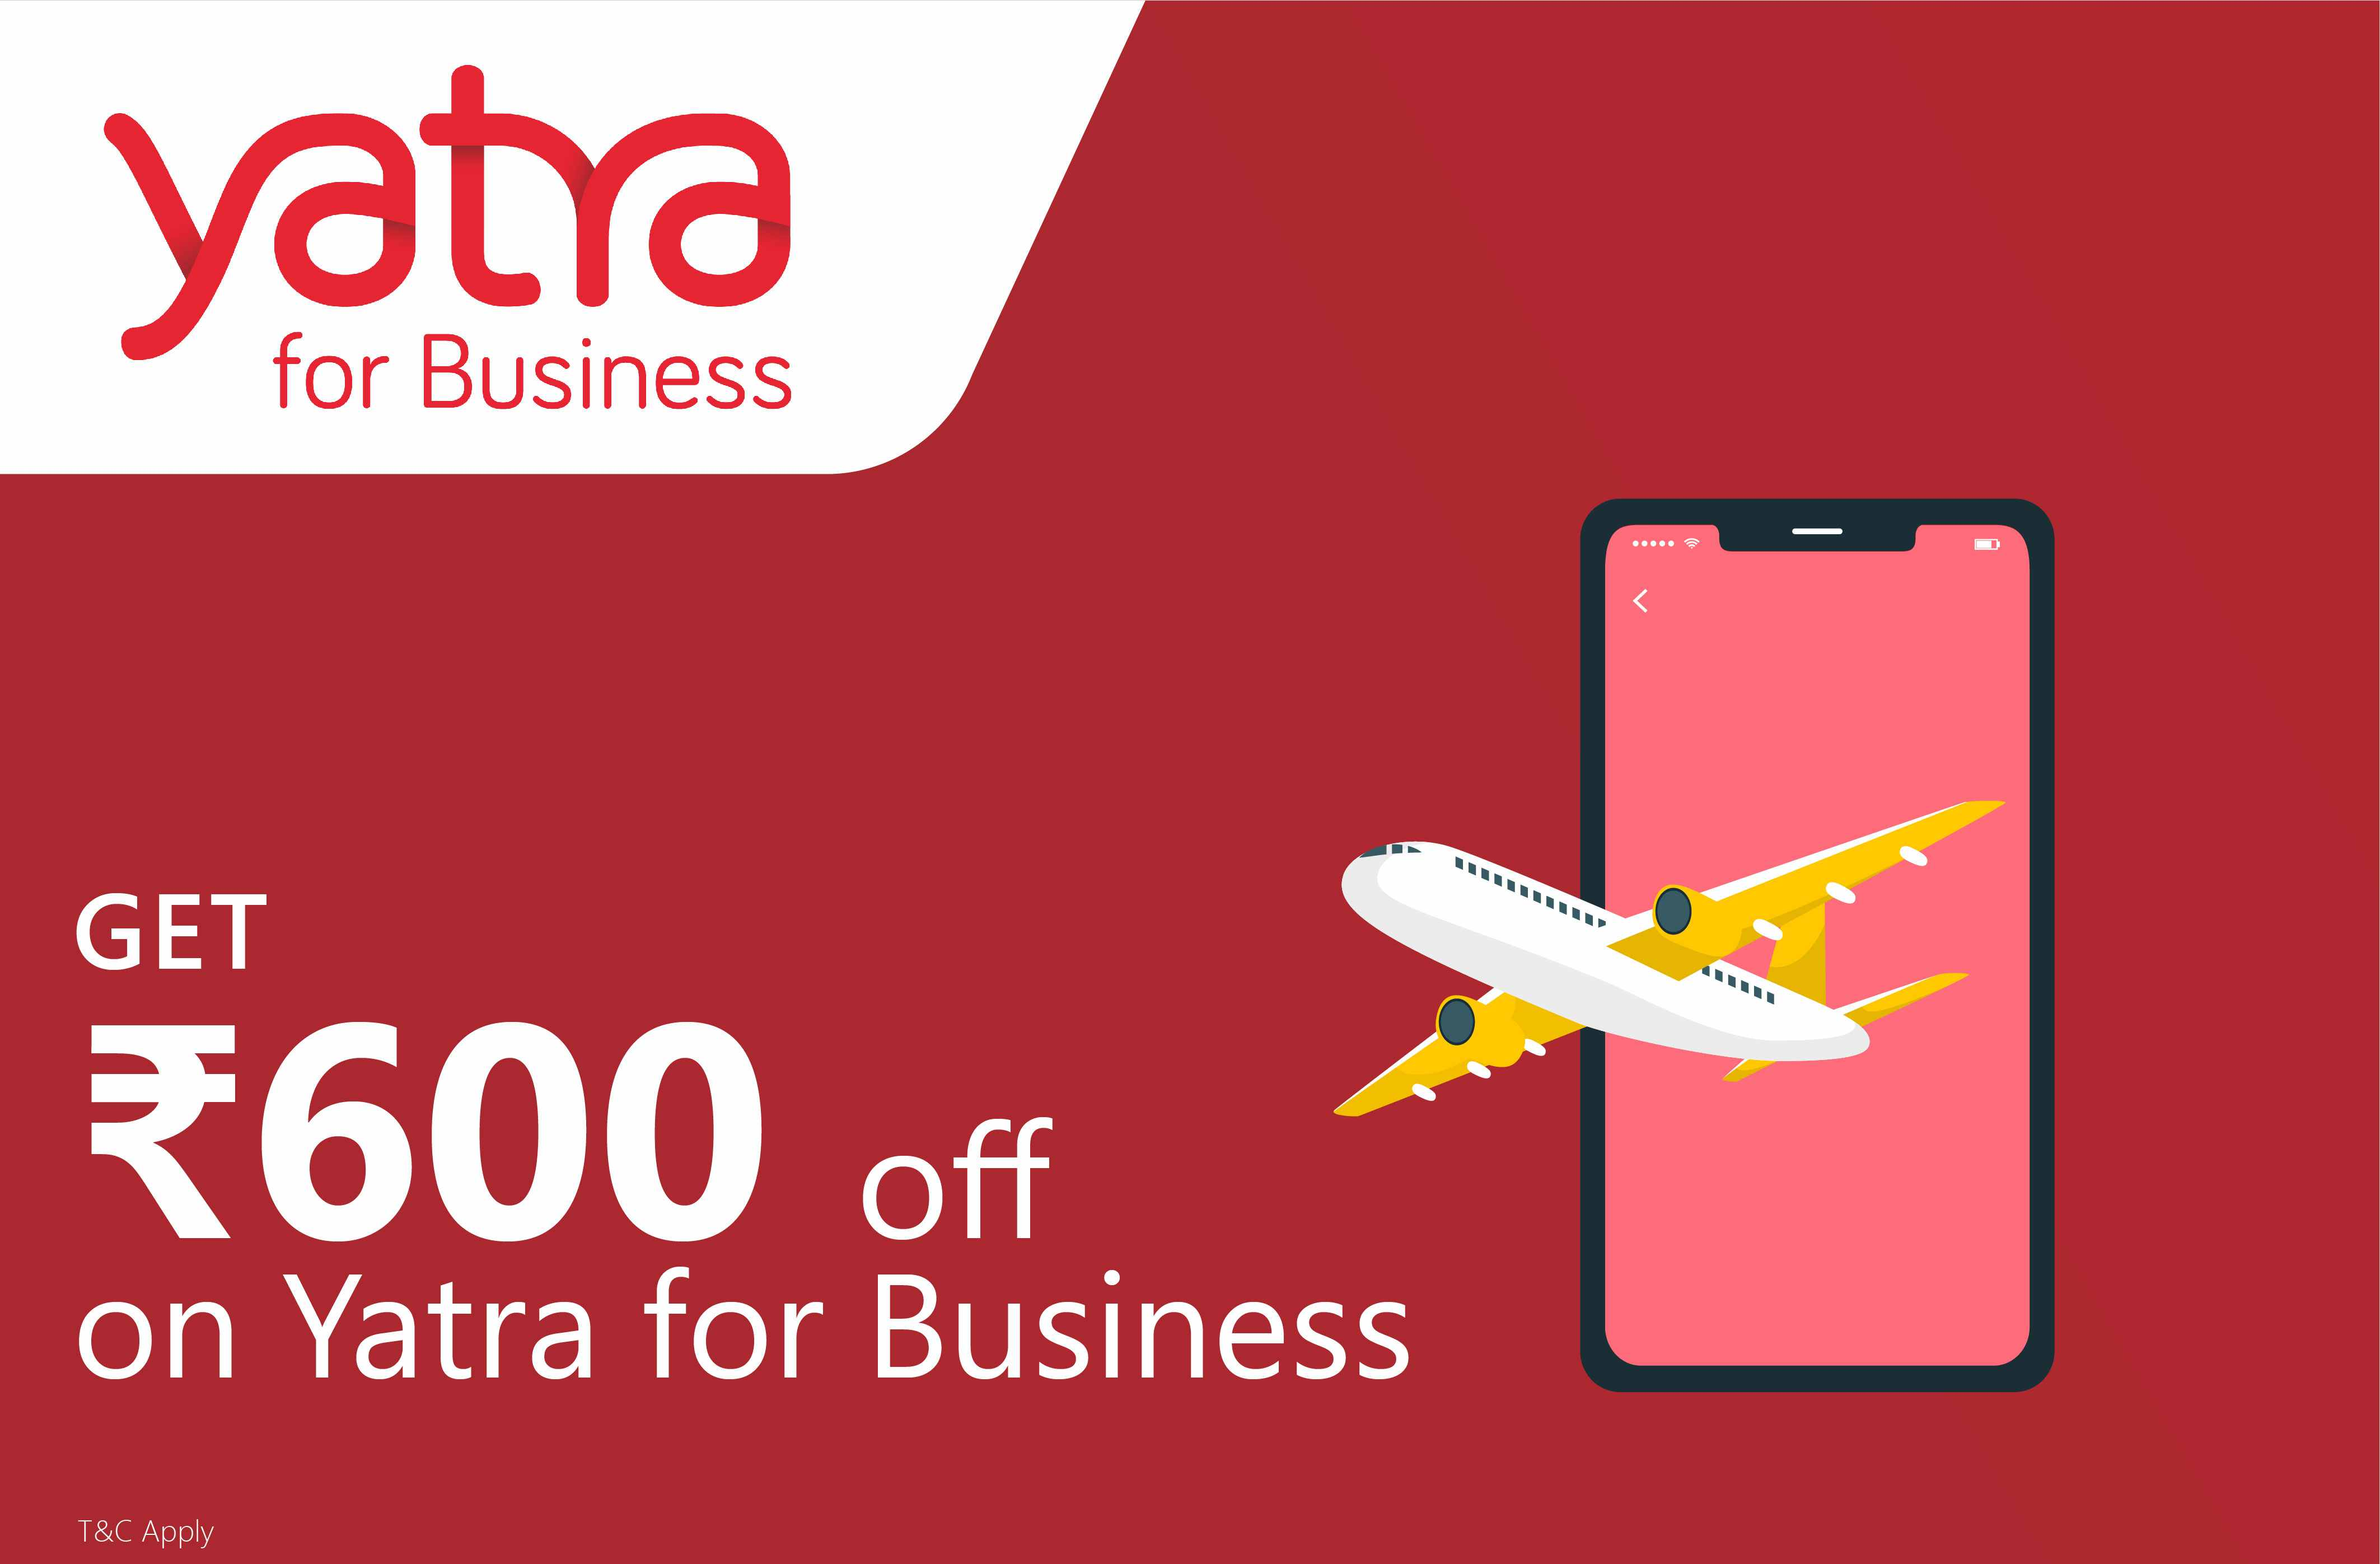 Rs.600 off on Yatra for Business